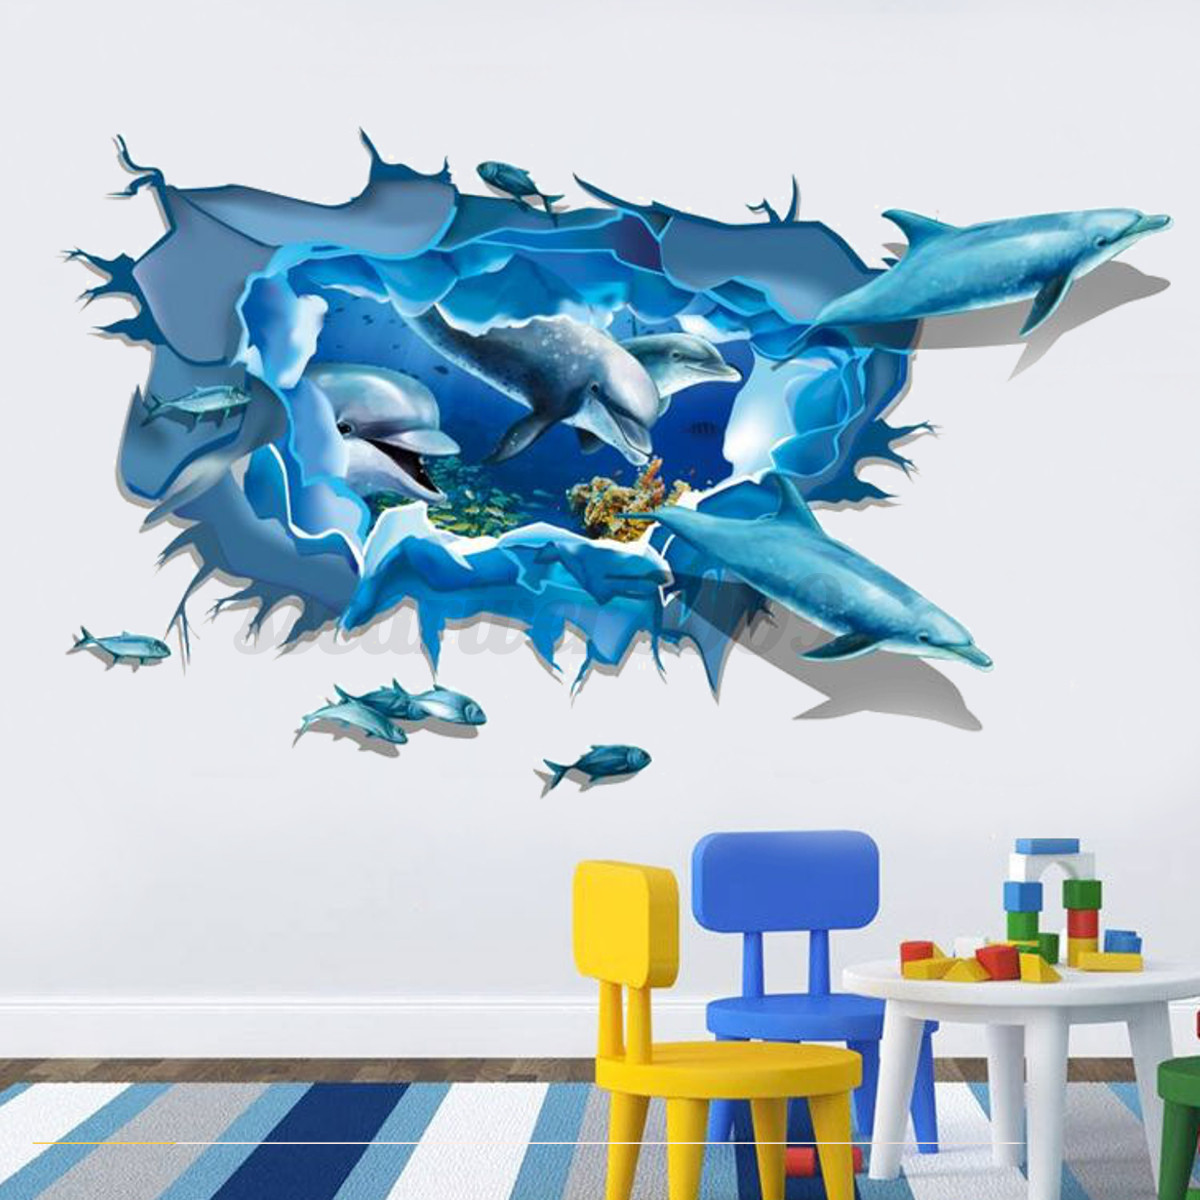 3d removable sea world dolphin turtle wall decal pvc sticker decor kids room new ebay. Black Bedroom Furniture Sets. Home Design Ideas